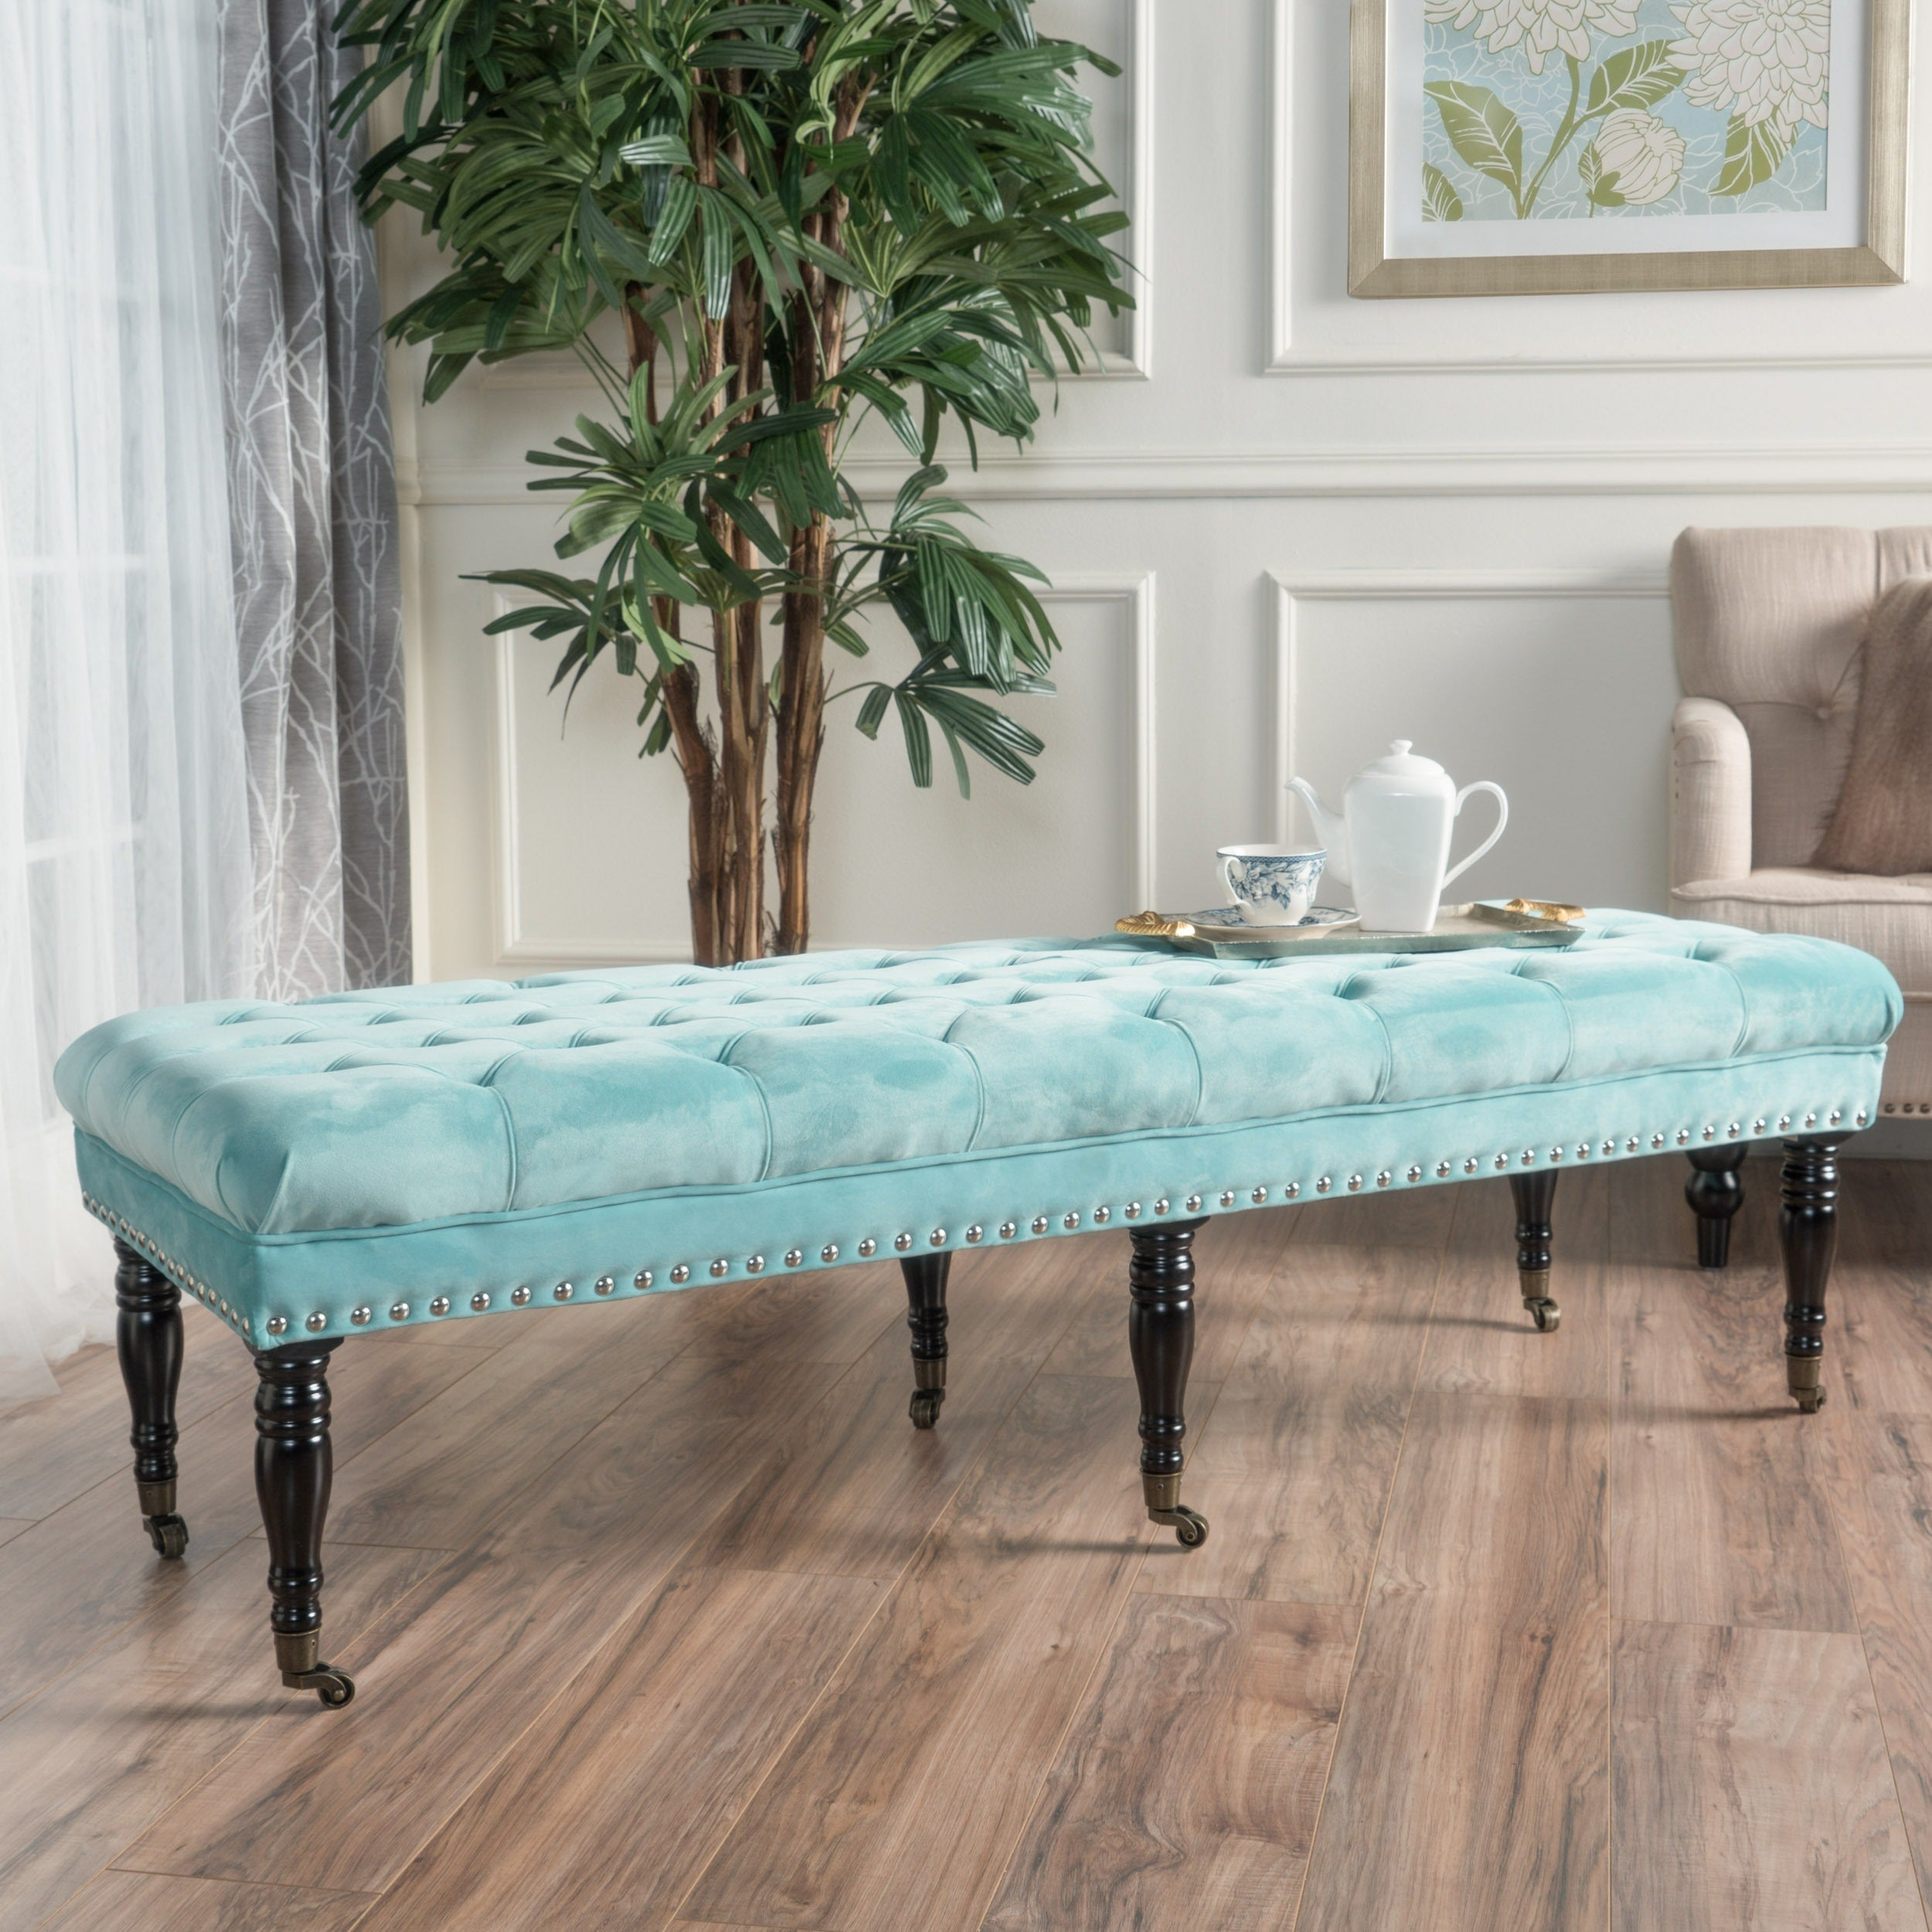 Shop Hastings Tufted Velvet Fabric Ottoman Bench with Casters by ...